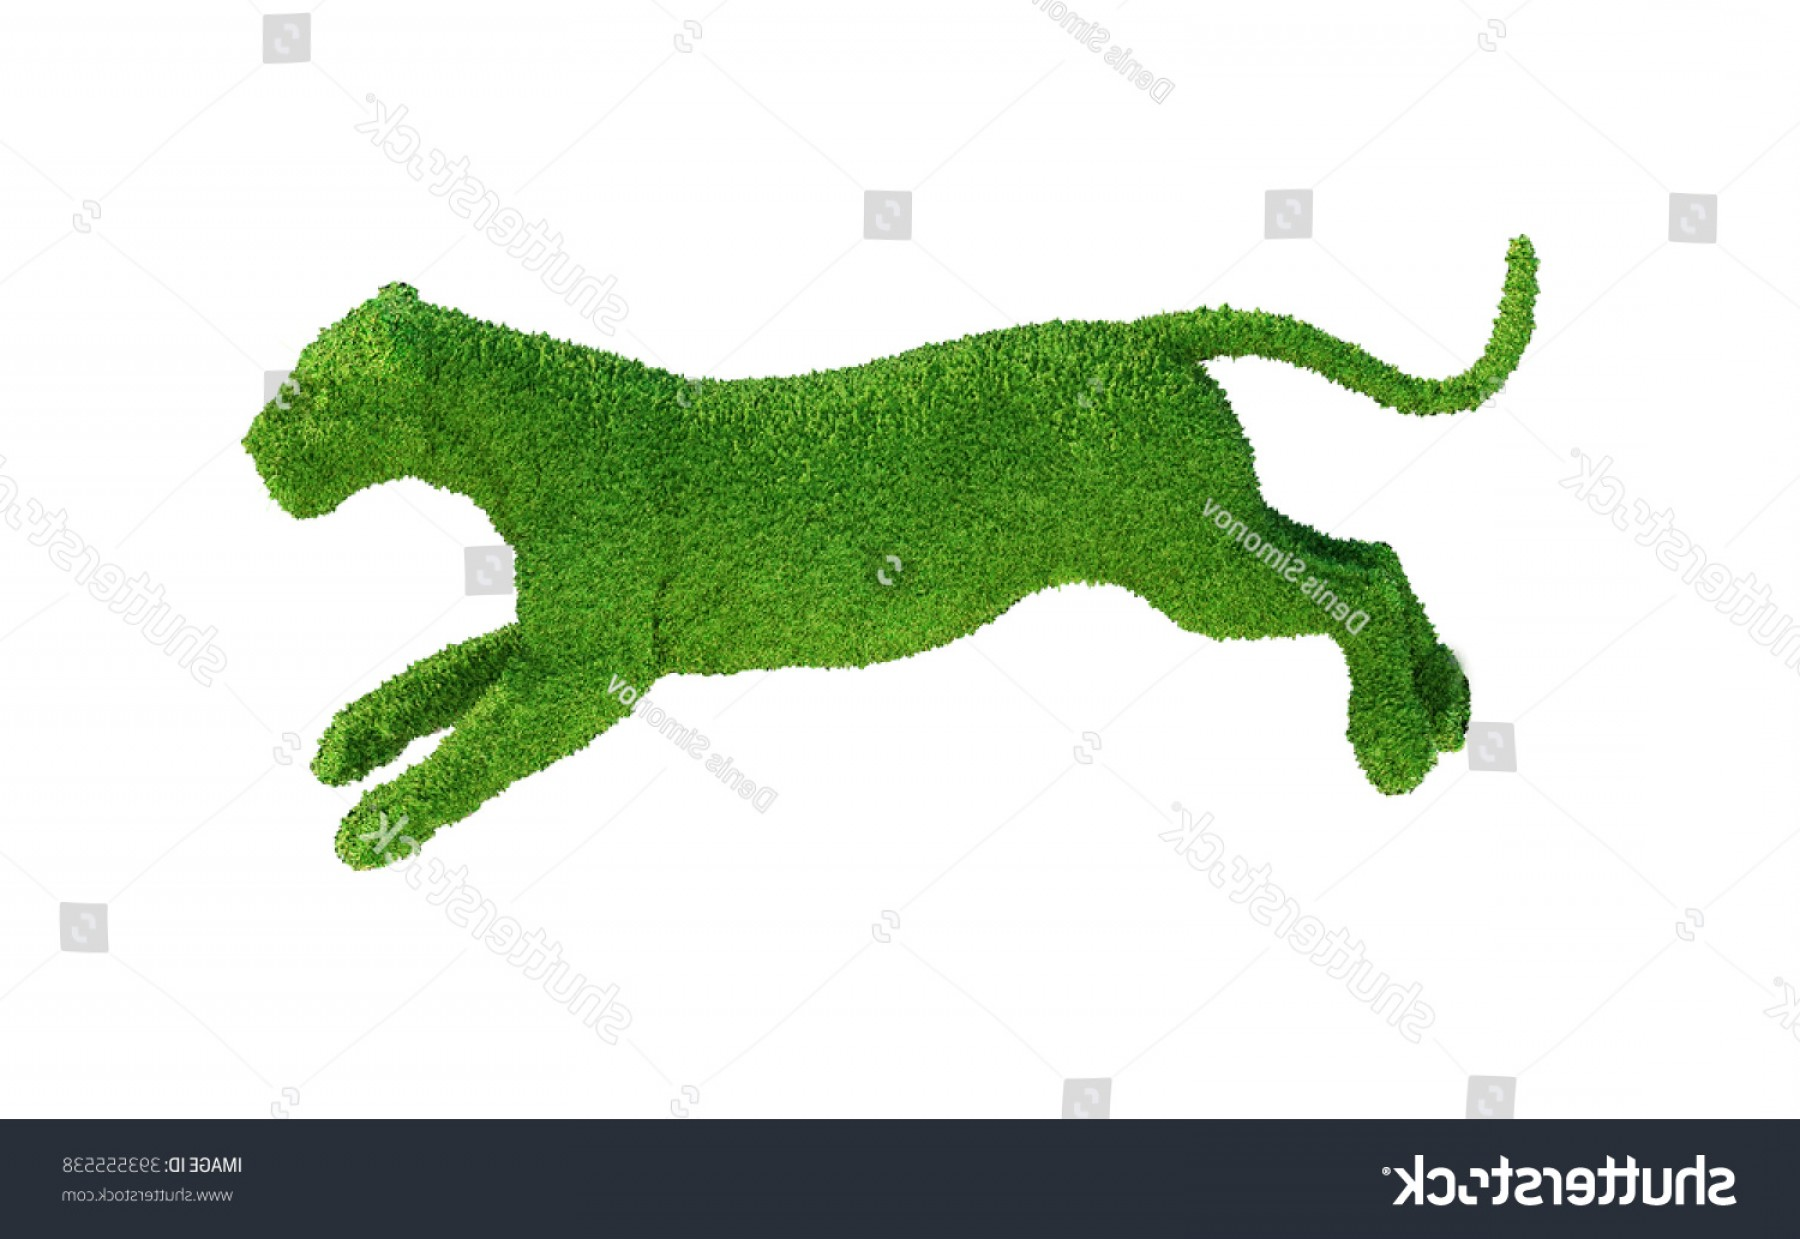 Green Tiger Vector: Green Tiger Grass Render D